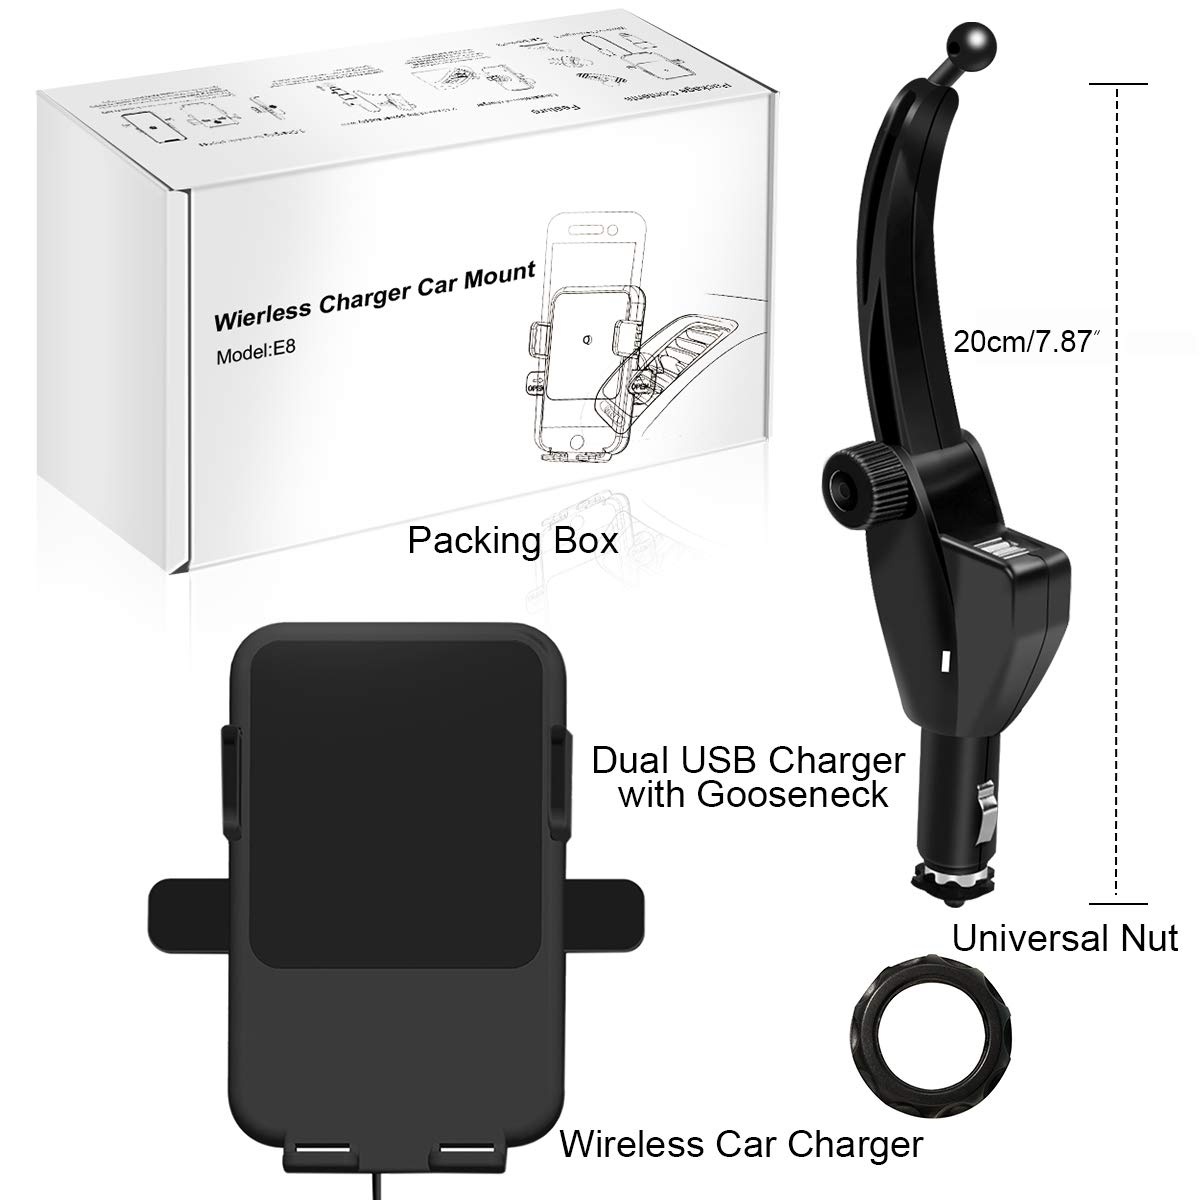 Car Charger Cradle Mount Compatible for Samsung Galaxy S10e//S10//S10+//S9 and iPhone X//XR//XS Max and QI-Enabled Phones Wireless Car Charger Phone Holder, 10W Qi Fast Charging